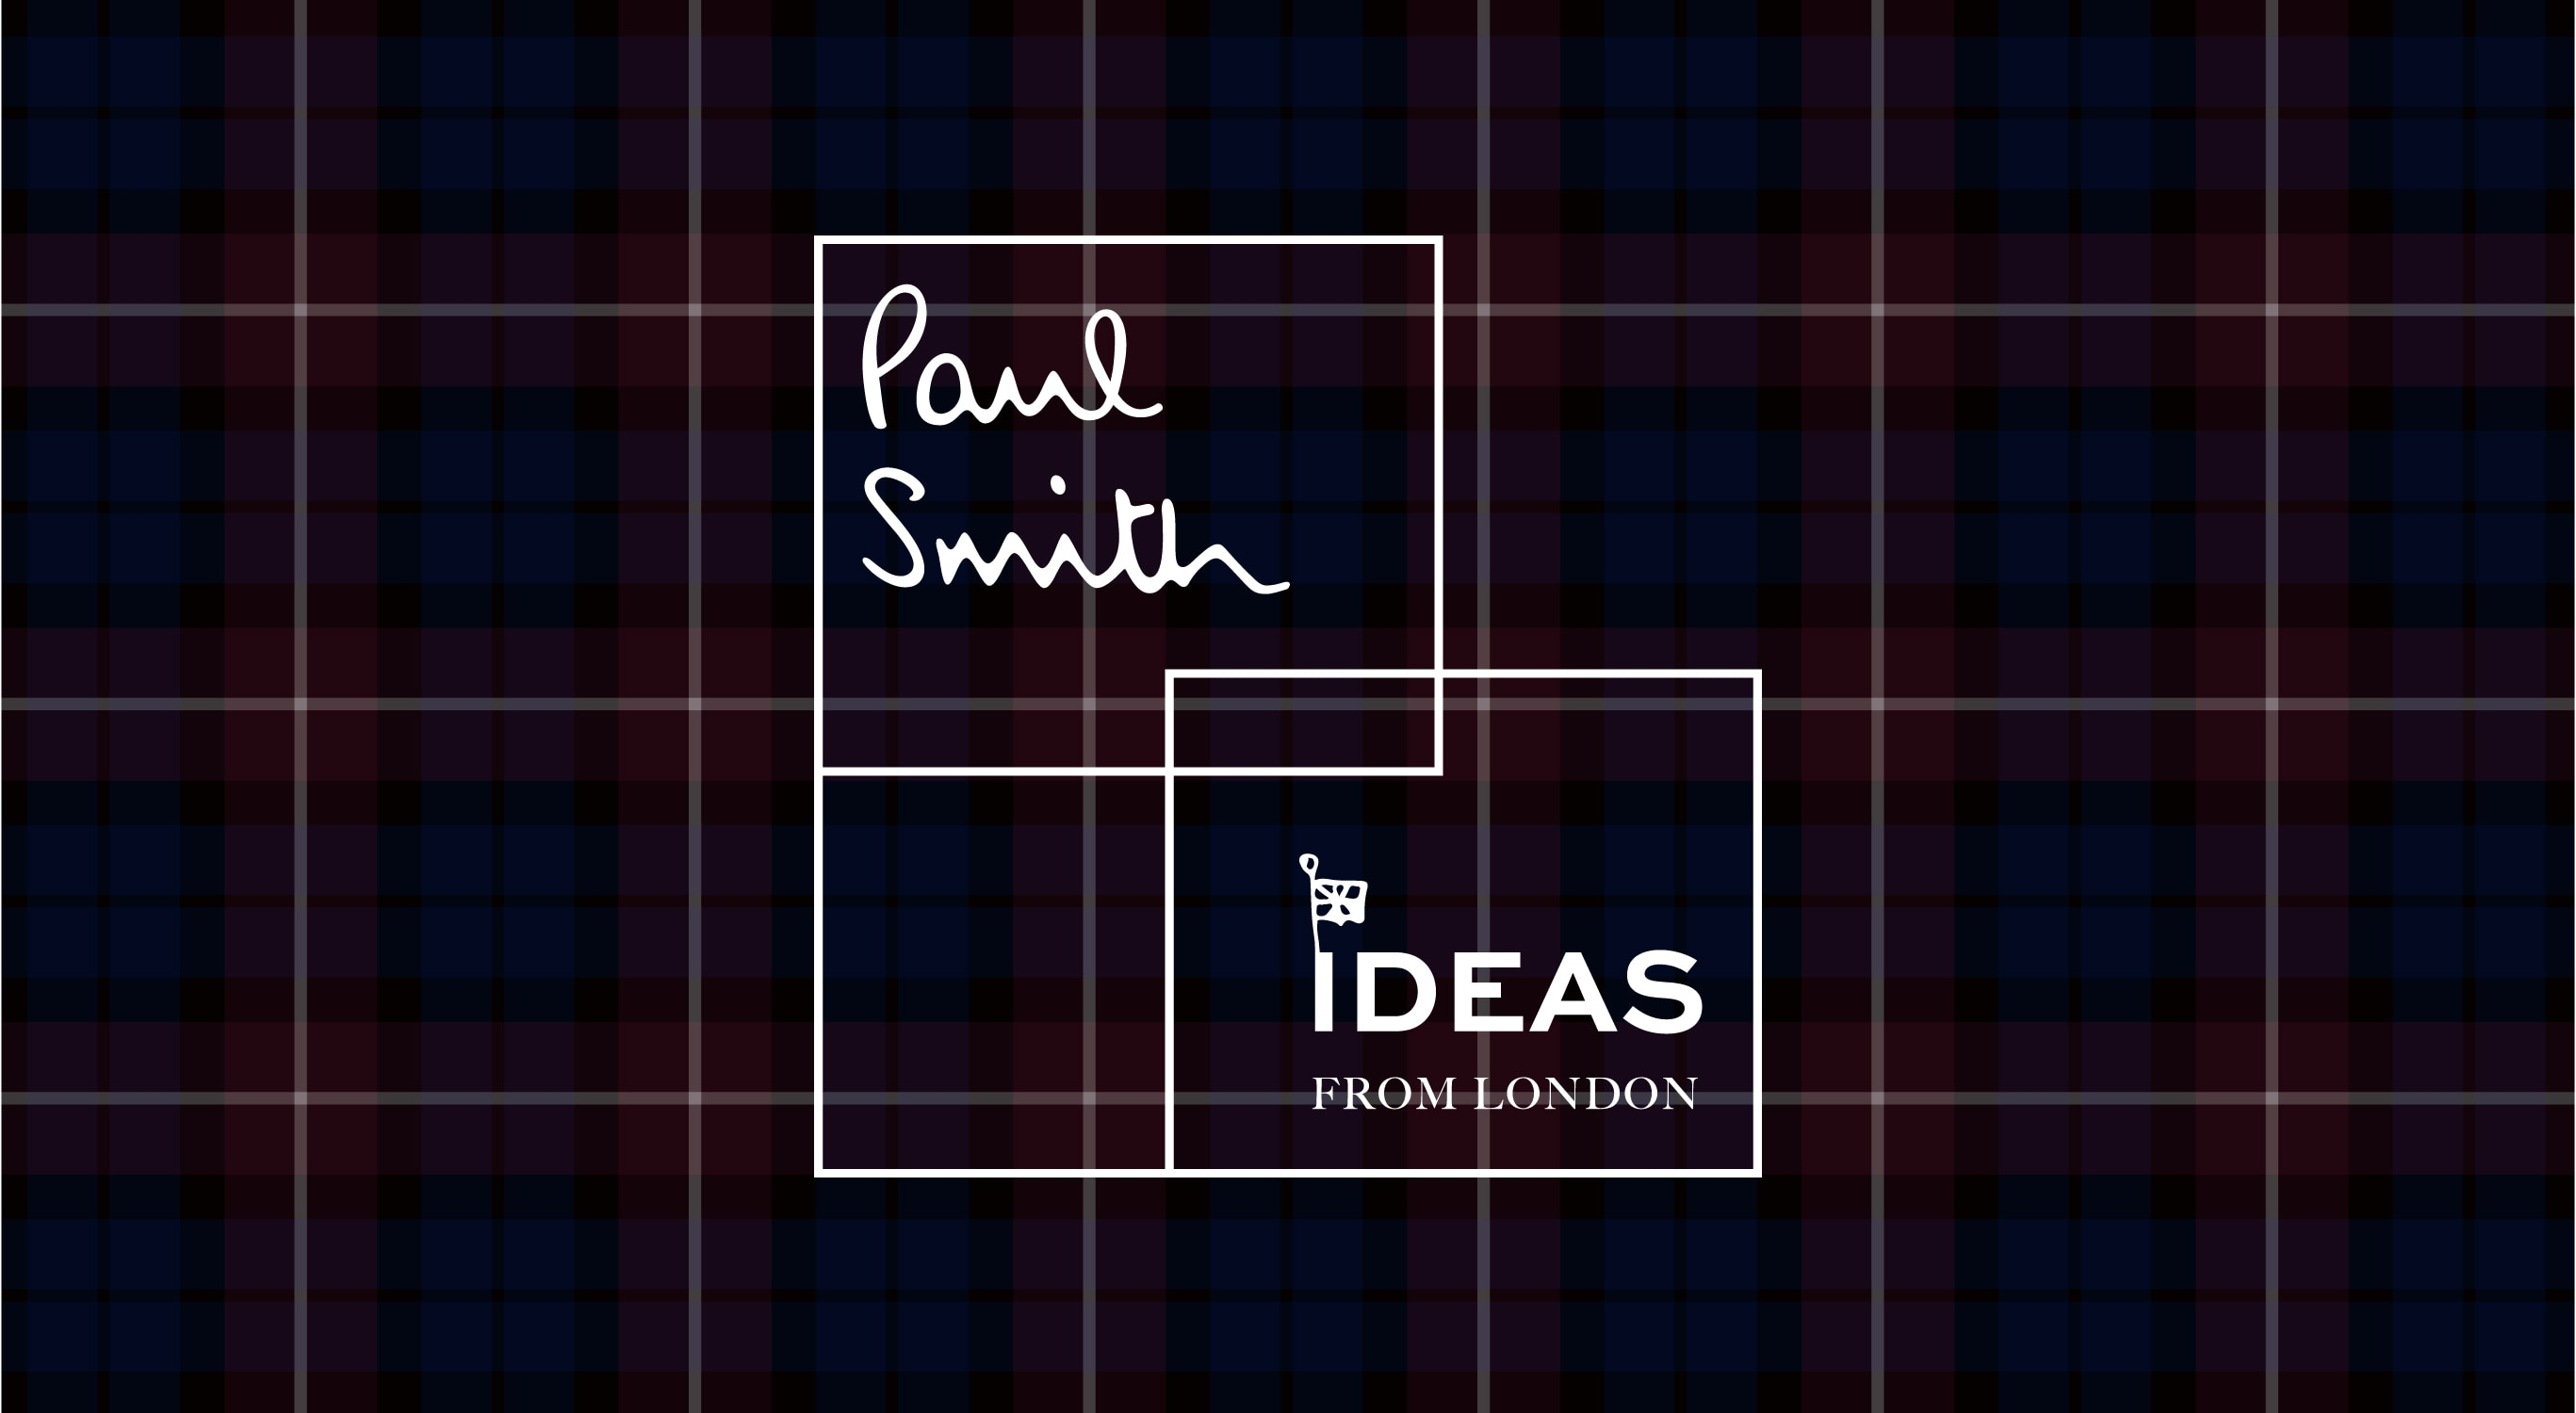 IDEAS FROM LONDON